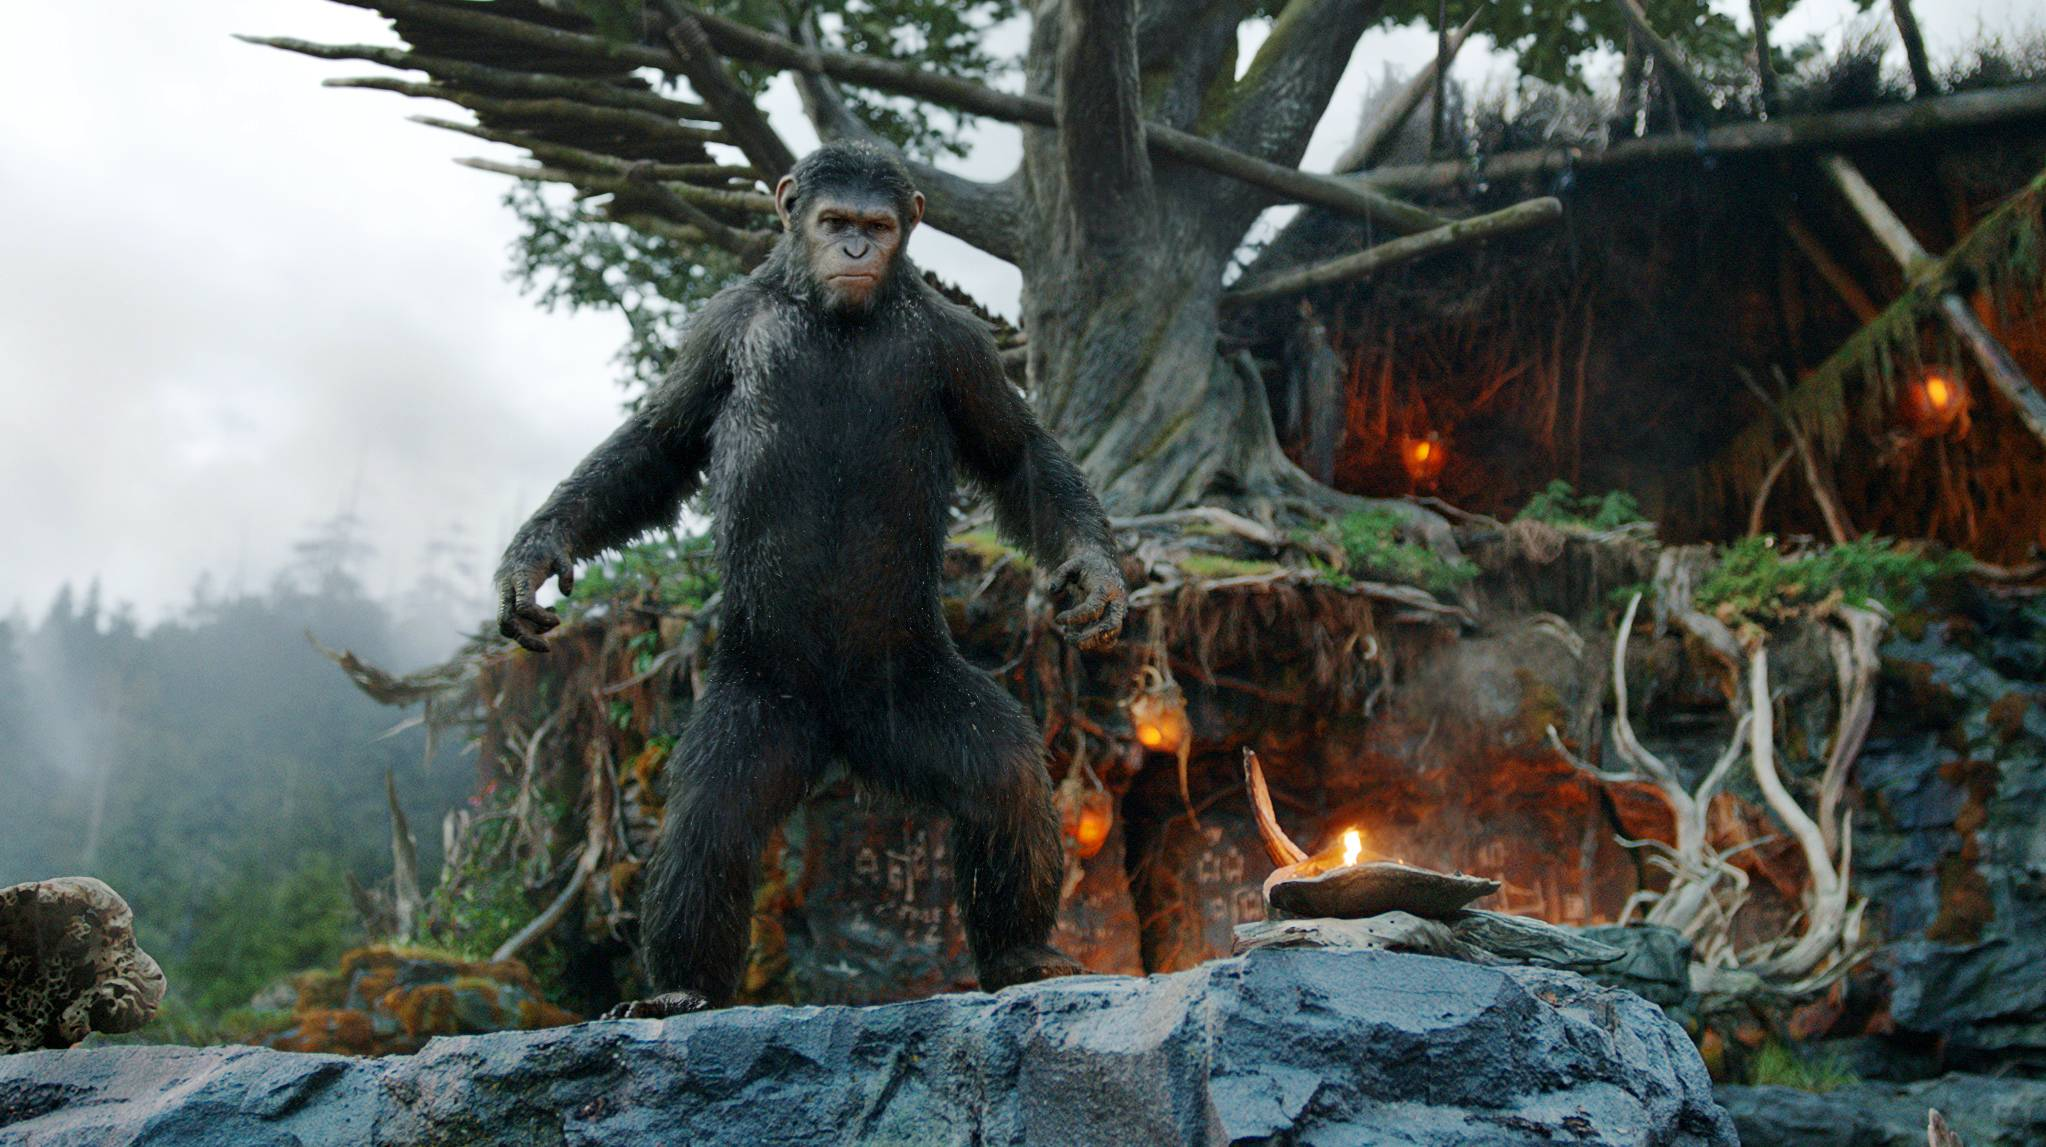 """Dawn of the Planet of the Apes"" brought in $73 million its opening weekend -- one of the best debuts this summer, according to industry estimates."